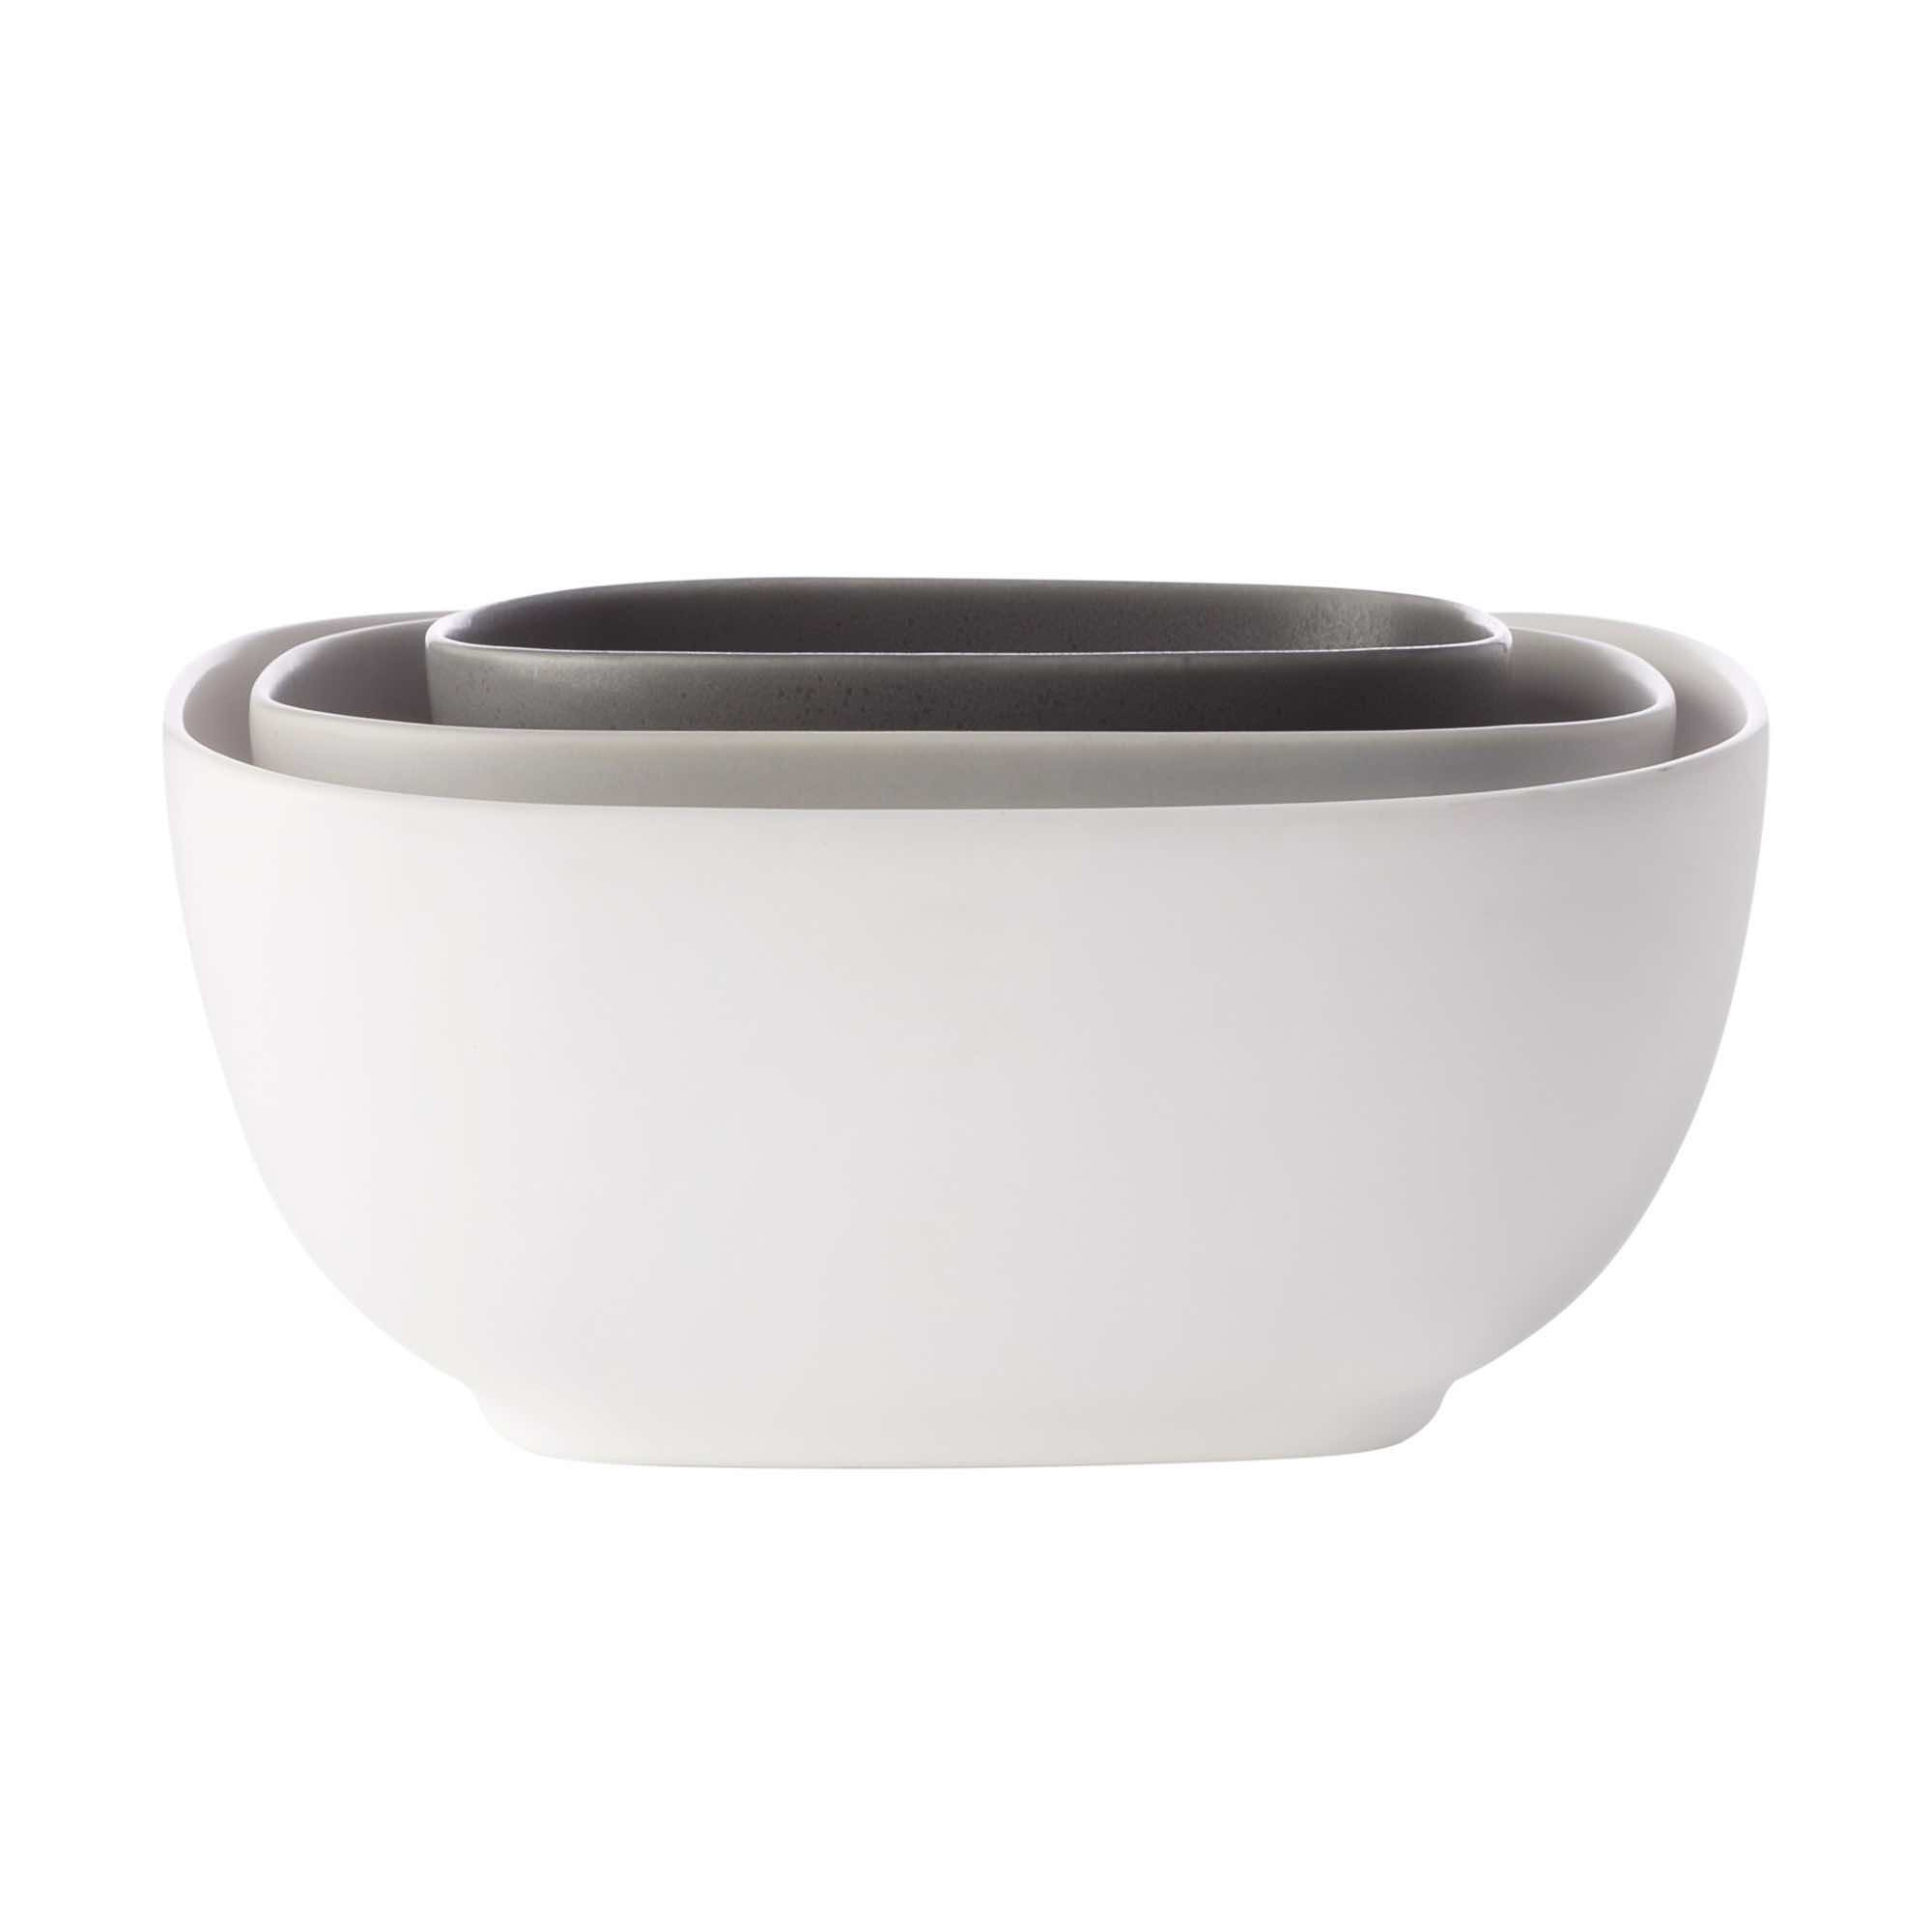 Maxwell & Williams Elemental Serving Bowls | Set of 3 Square